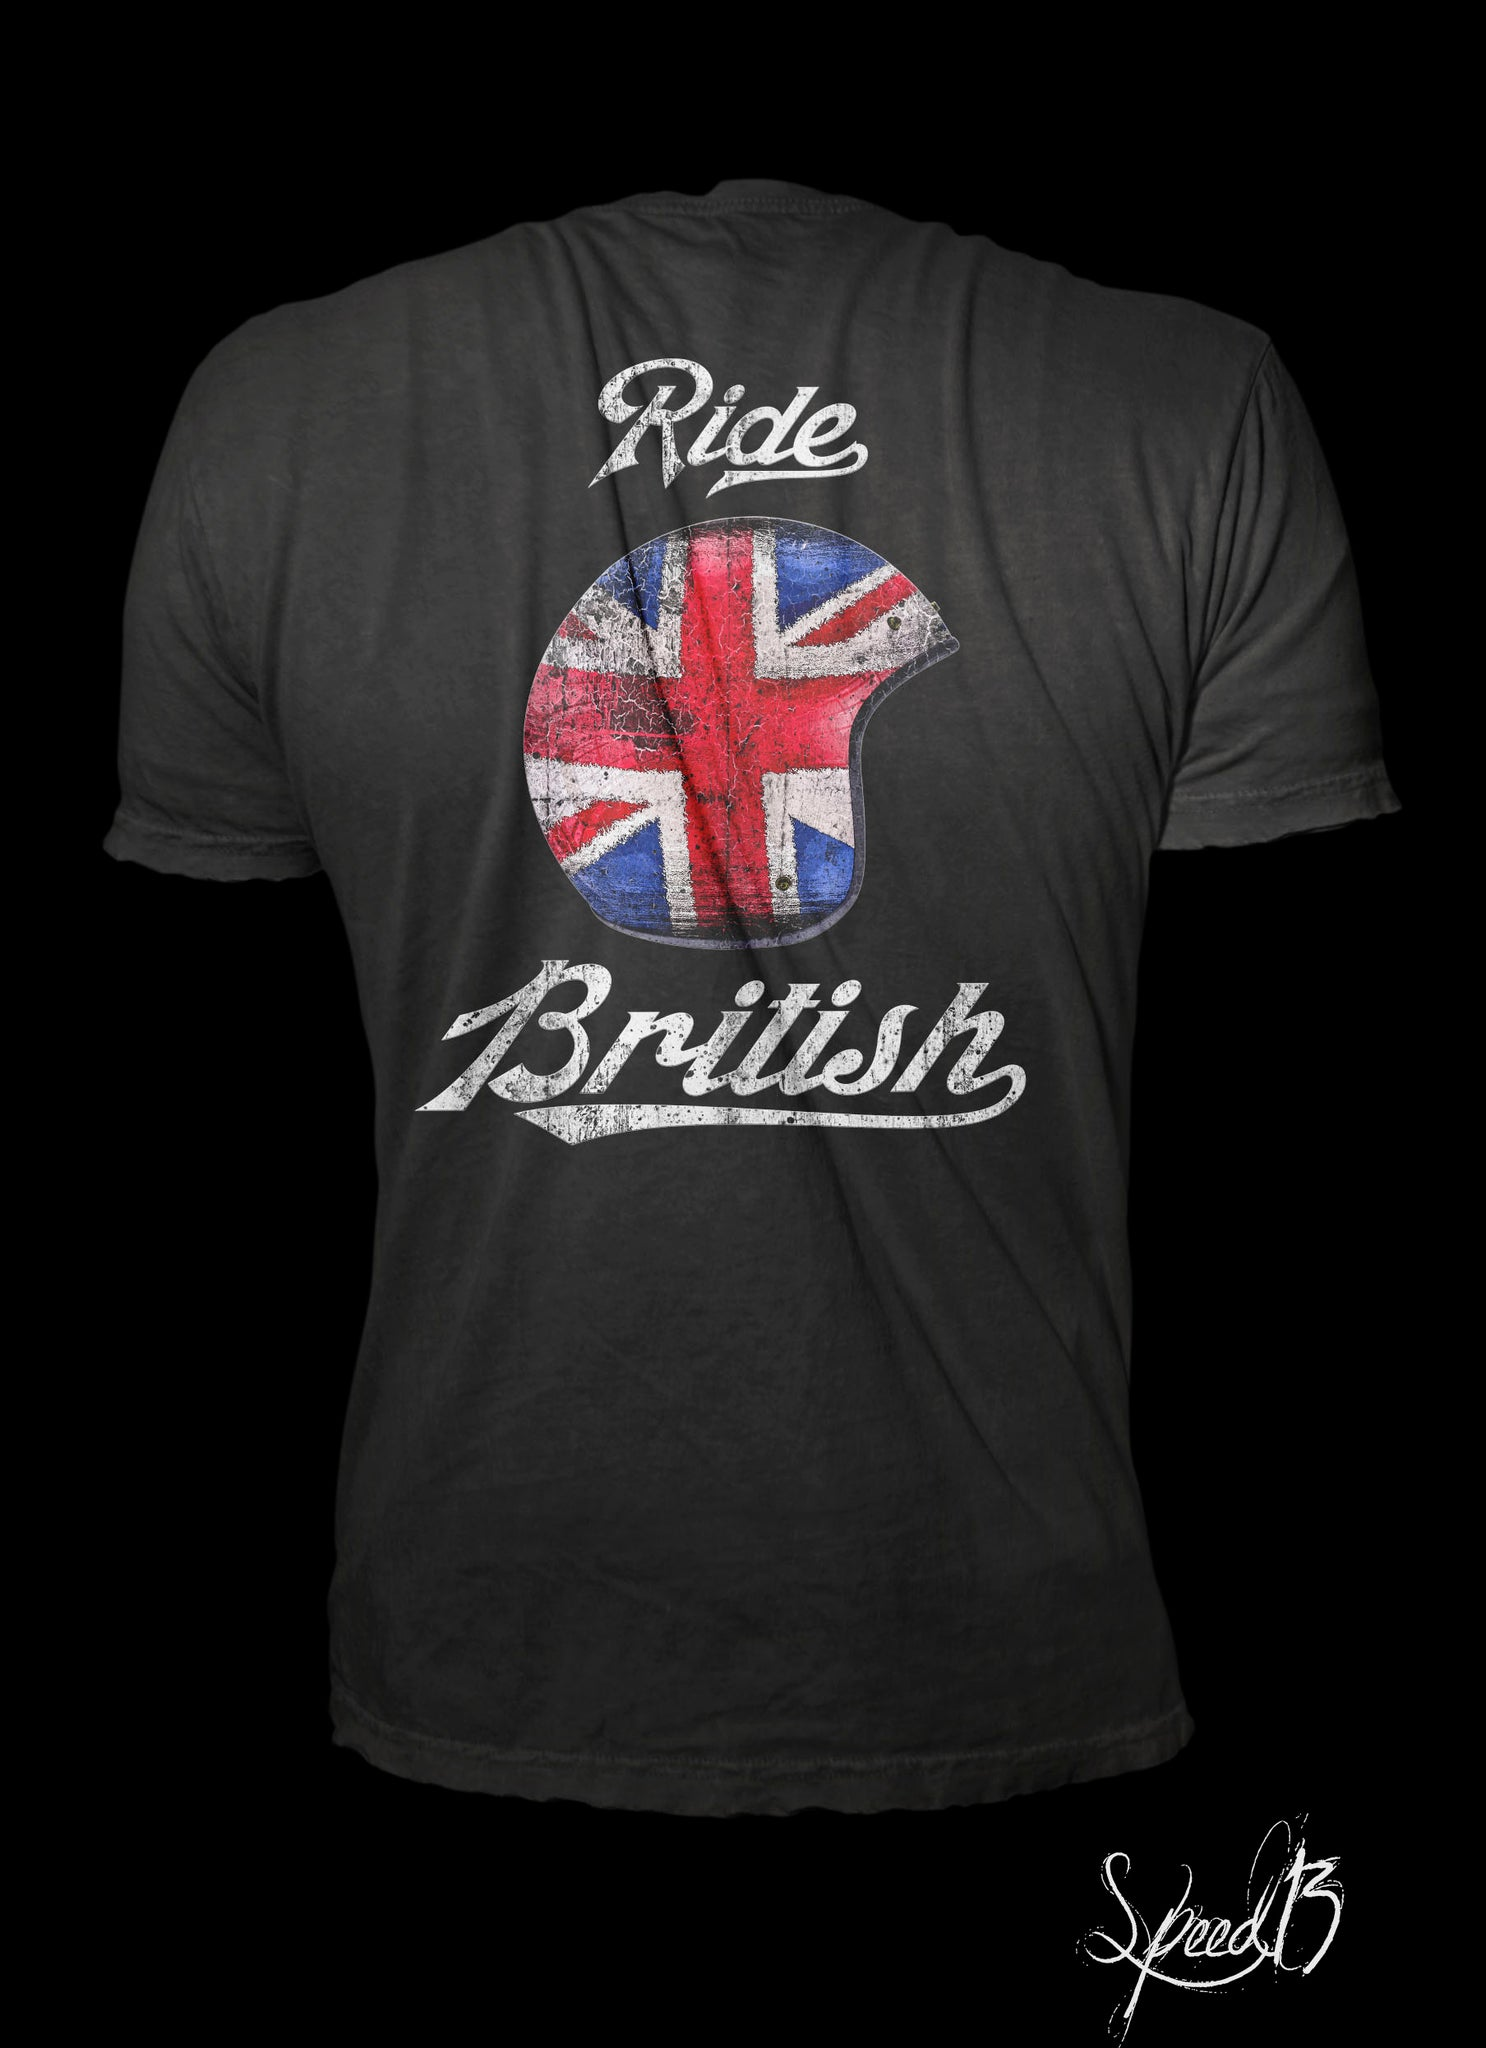 Ride British - Helmet Version